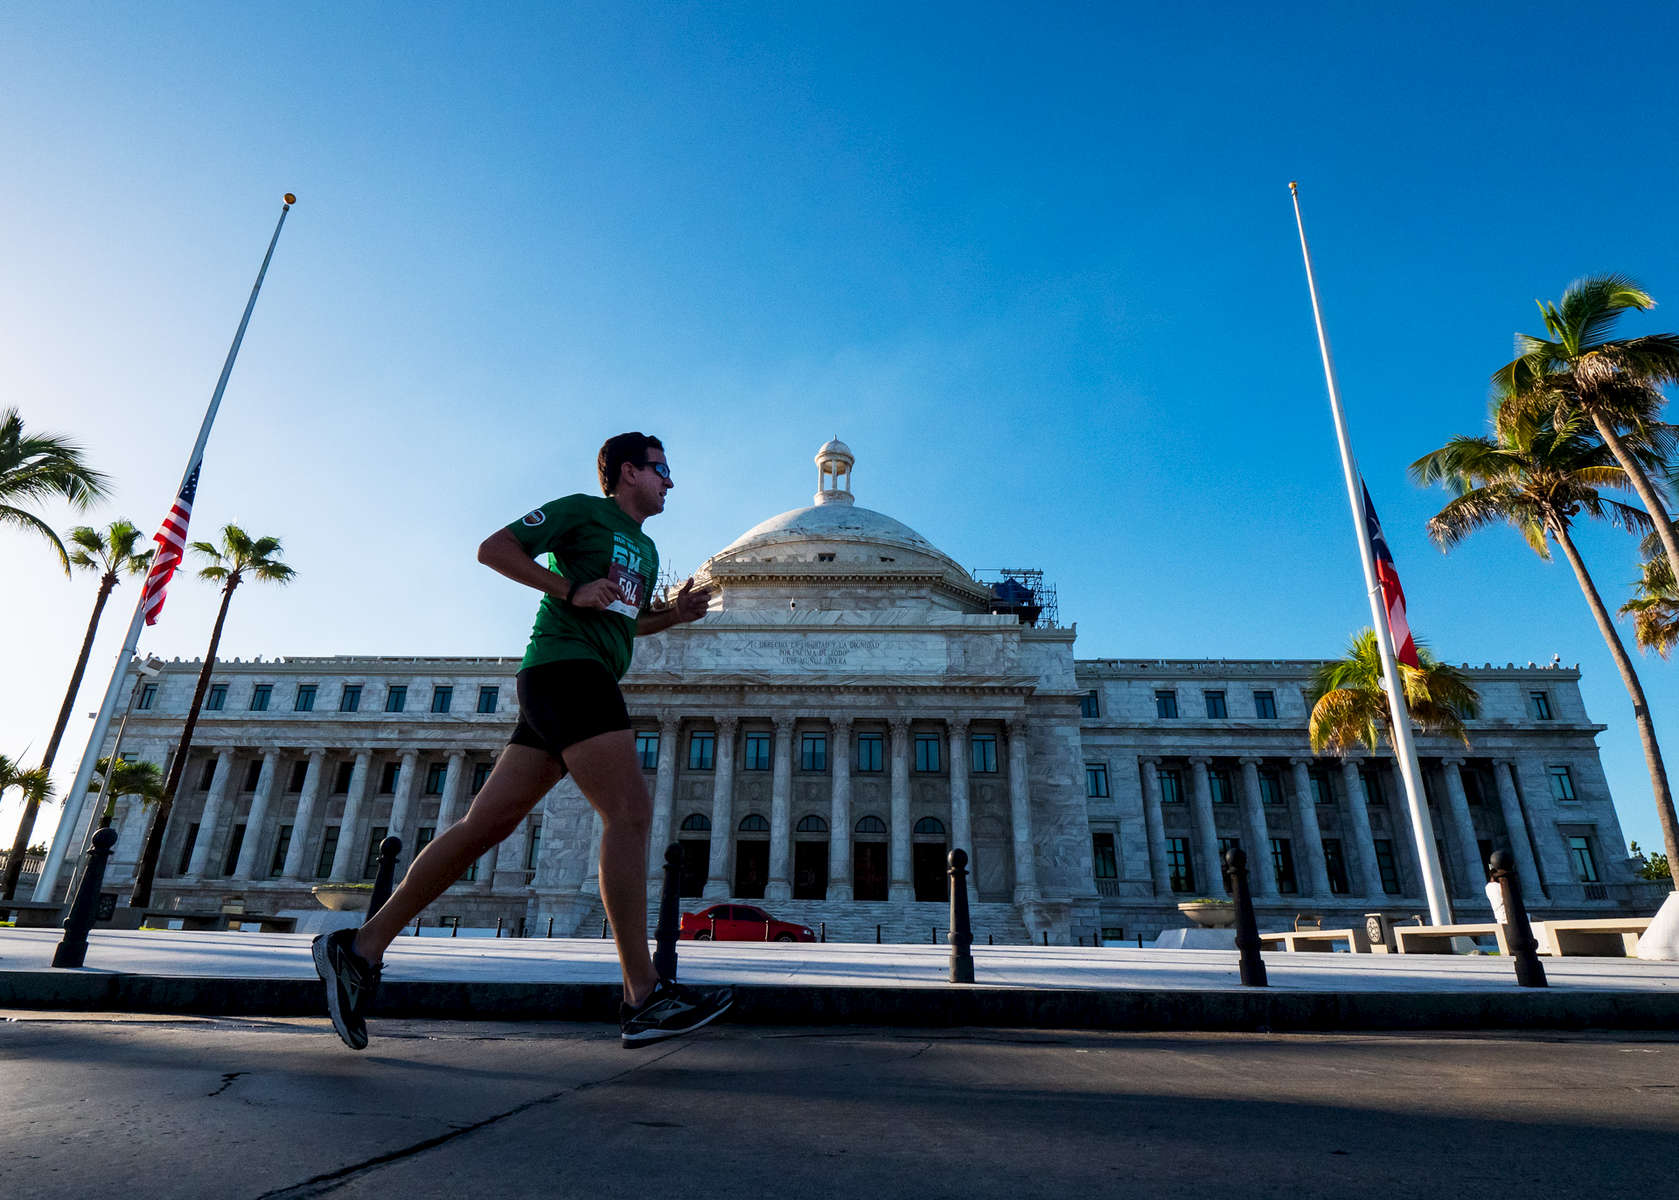 OLD SAN JUAN, PUERTO RICO - NOVEMBER 11:  An athlete competing in a 5k race runs past the Capitol Bulding on November 11, 2018 in Old San Juan, Puerto Rico. The effort continues in Puerto Rico to remain and rebuild more than one year after the Hurricane Maria hit and devastated the island on September 20, 2017. The official number of deaths from the disaster is 2,975.